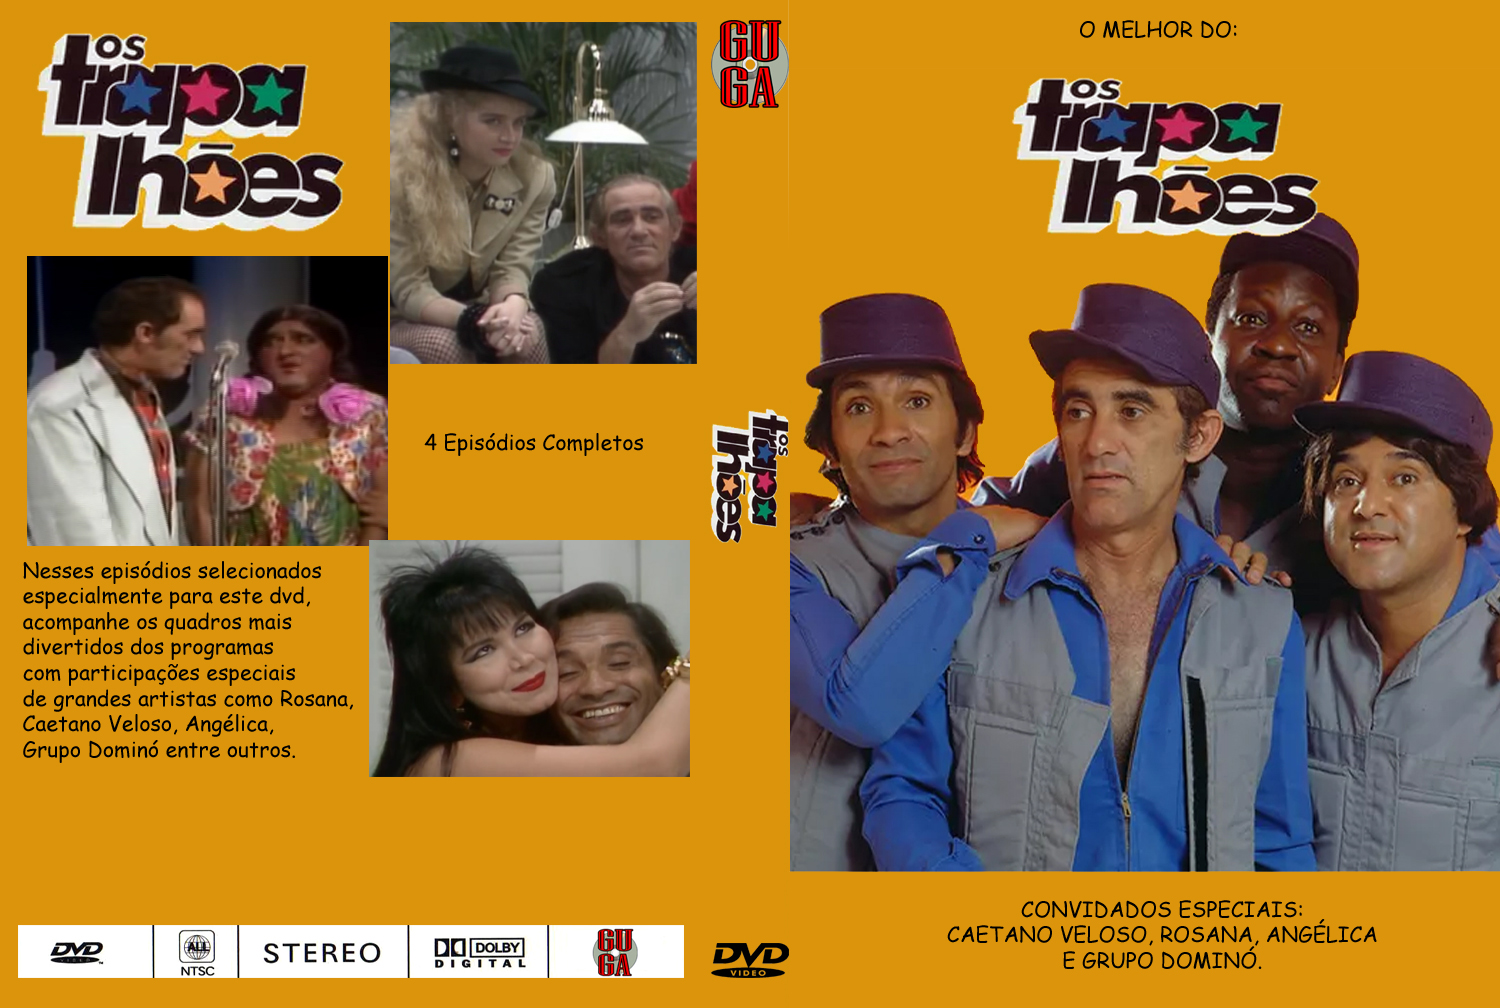 dvd os trapalhoes